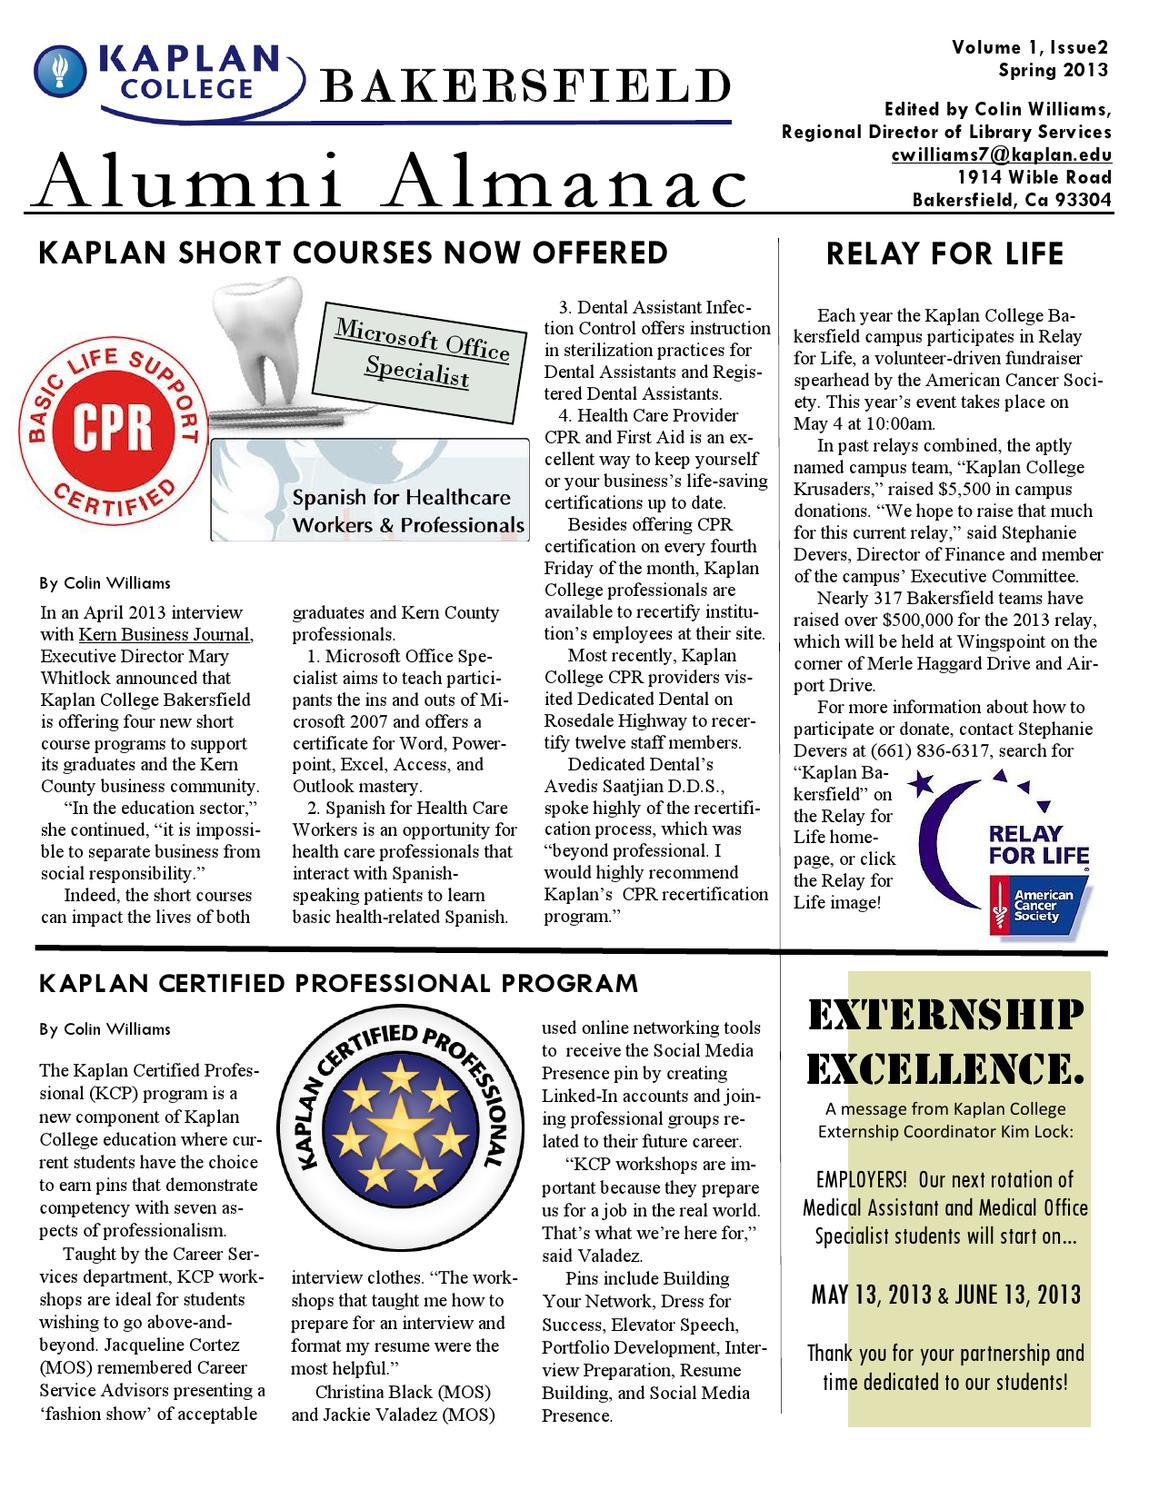 1 1 bakersfield alumni almanac newsletter by kaplan college issuu 1betcityfo Image collections